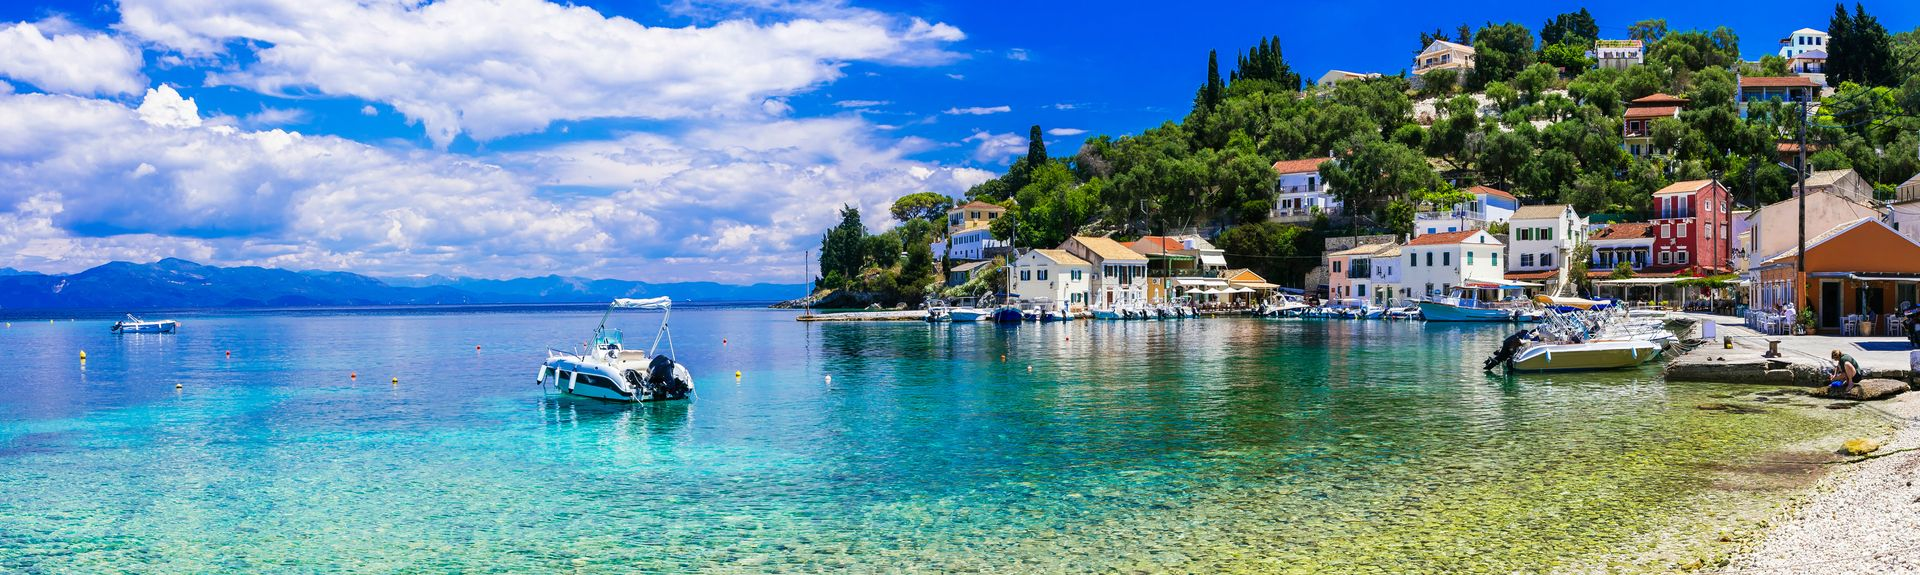 Paxos, Peloponnese, West Greece and Ionian Sea, Grekland